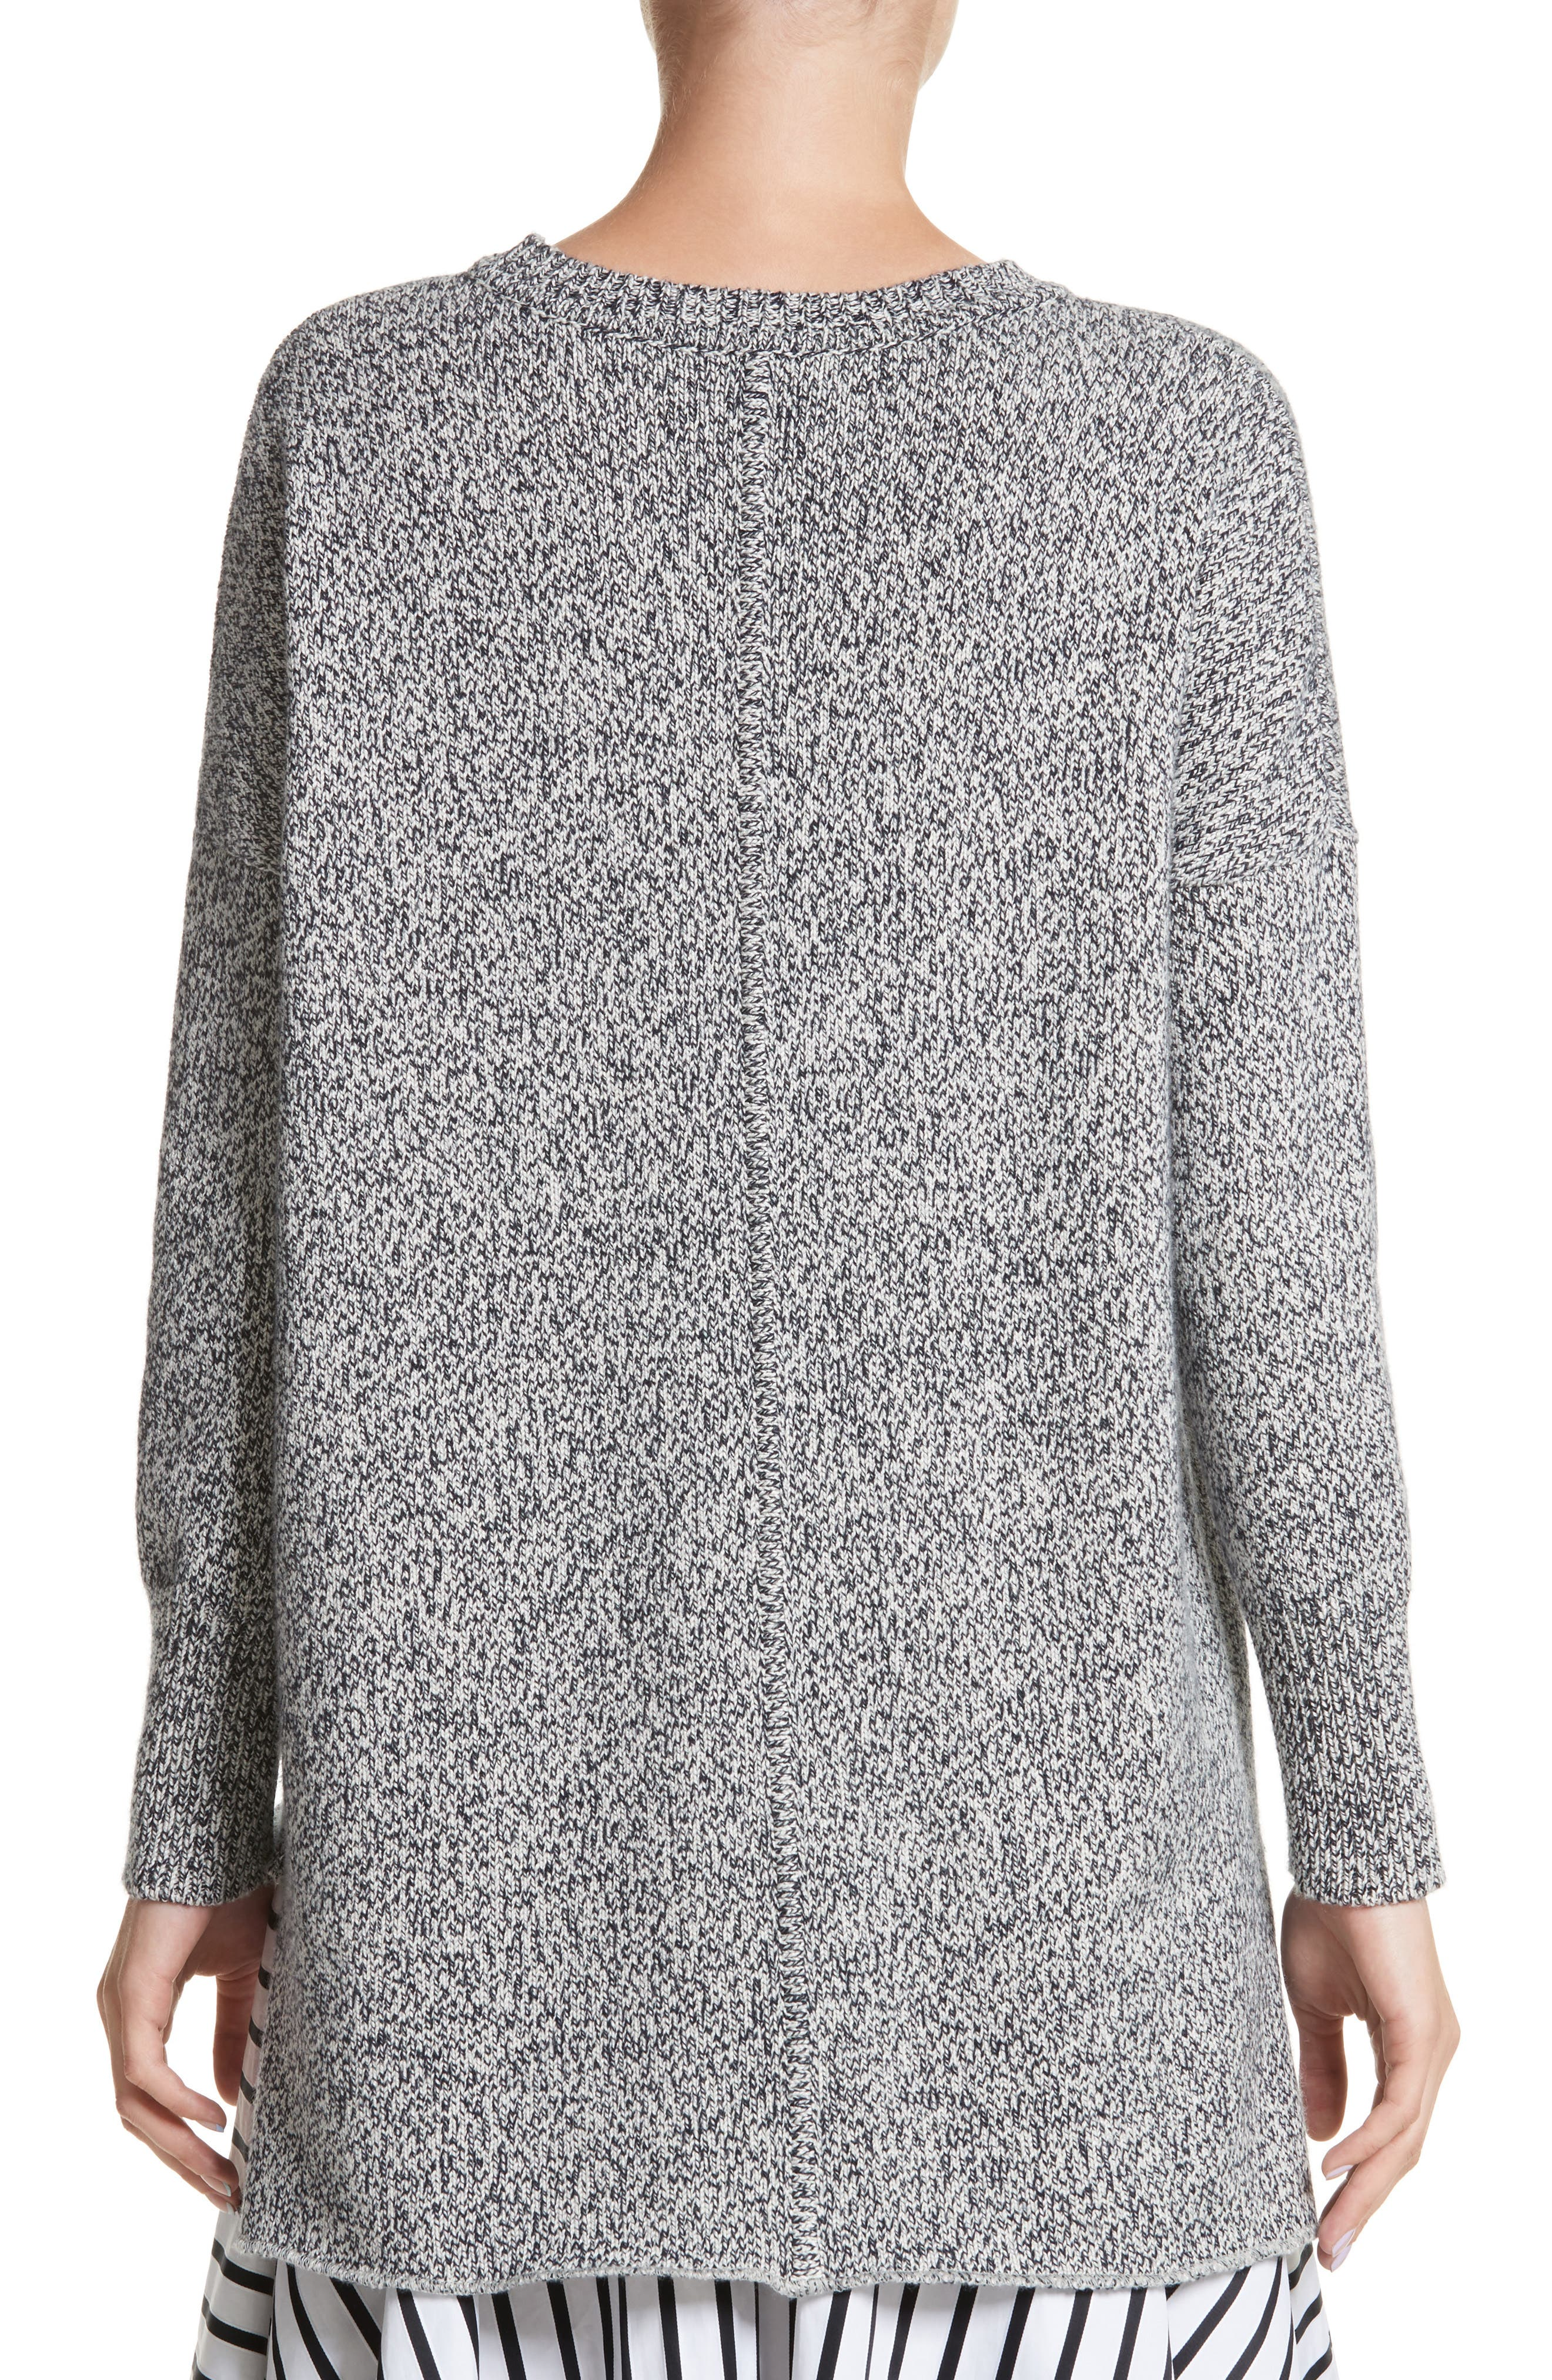 Alternate Image 2  - Adam Lippes Marled Cotton, Cashmere & Silk Sweater